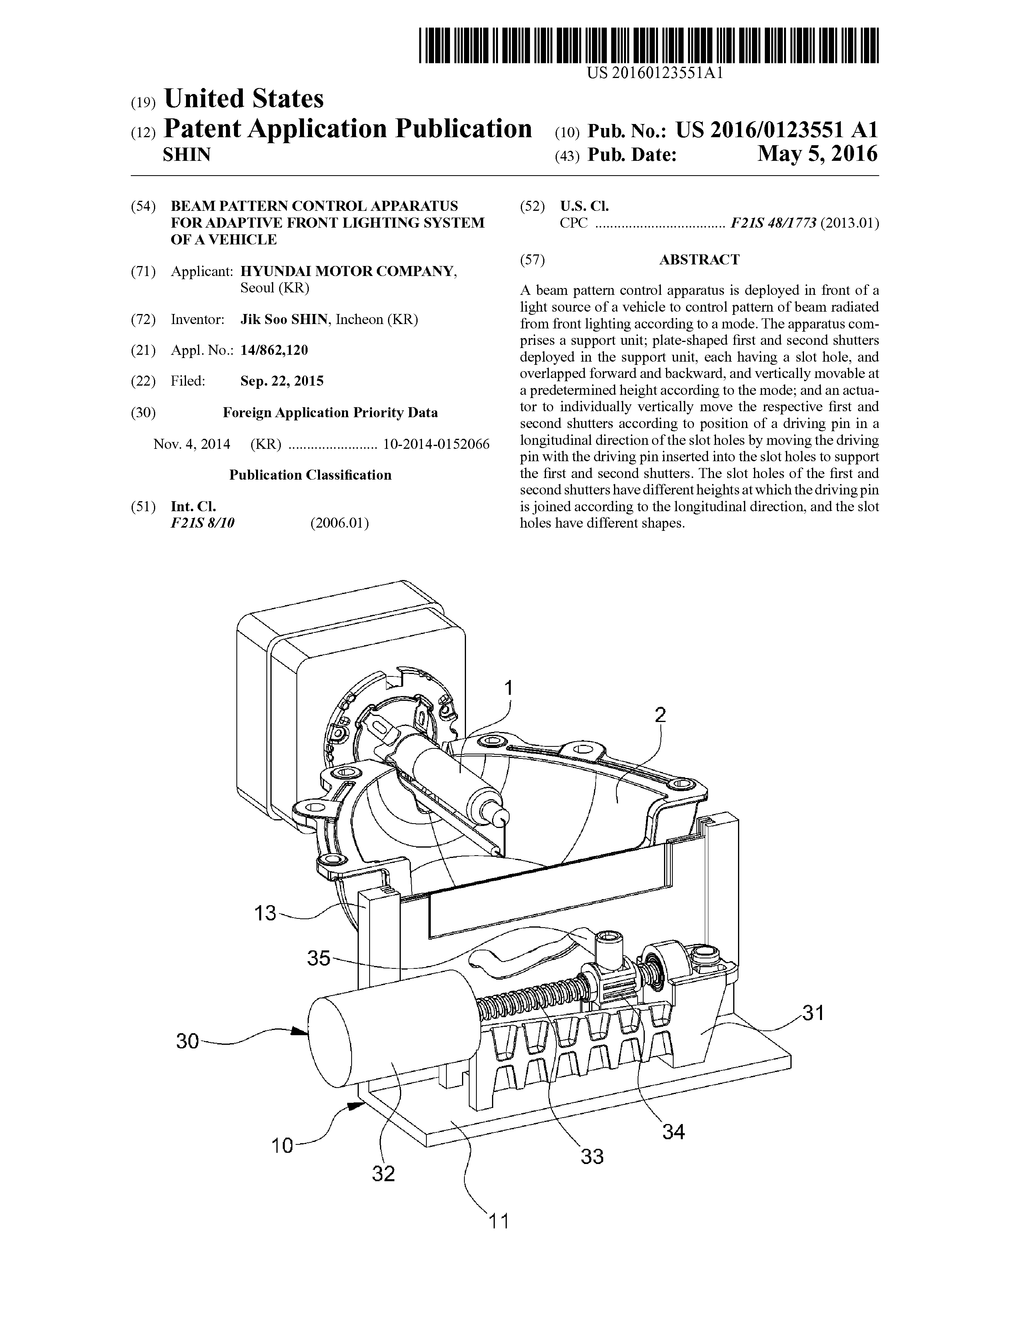 hight resolution of beam pattern control apparatus for adaptive front lighting system of a vehicle diagram schematic and image 01